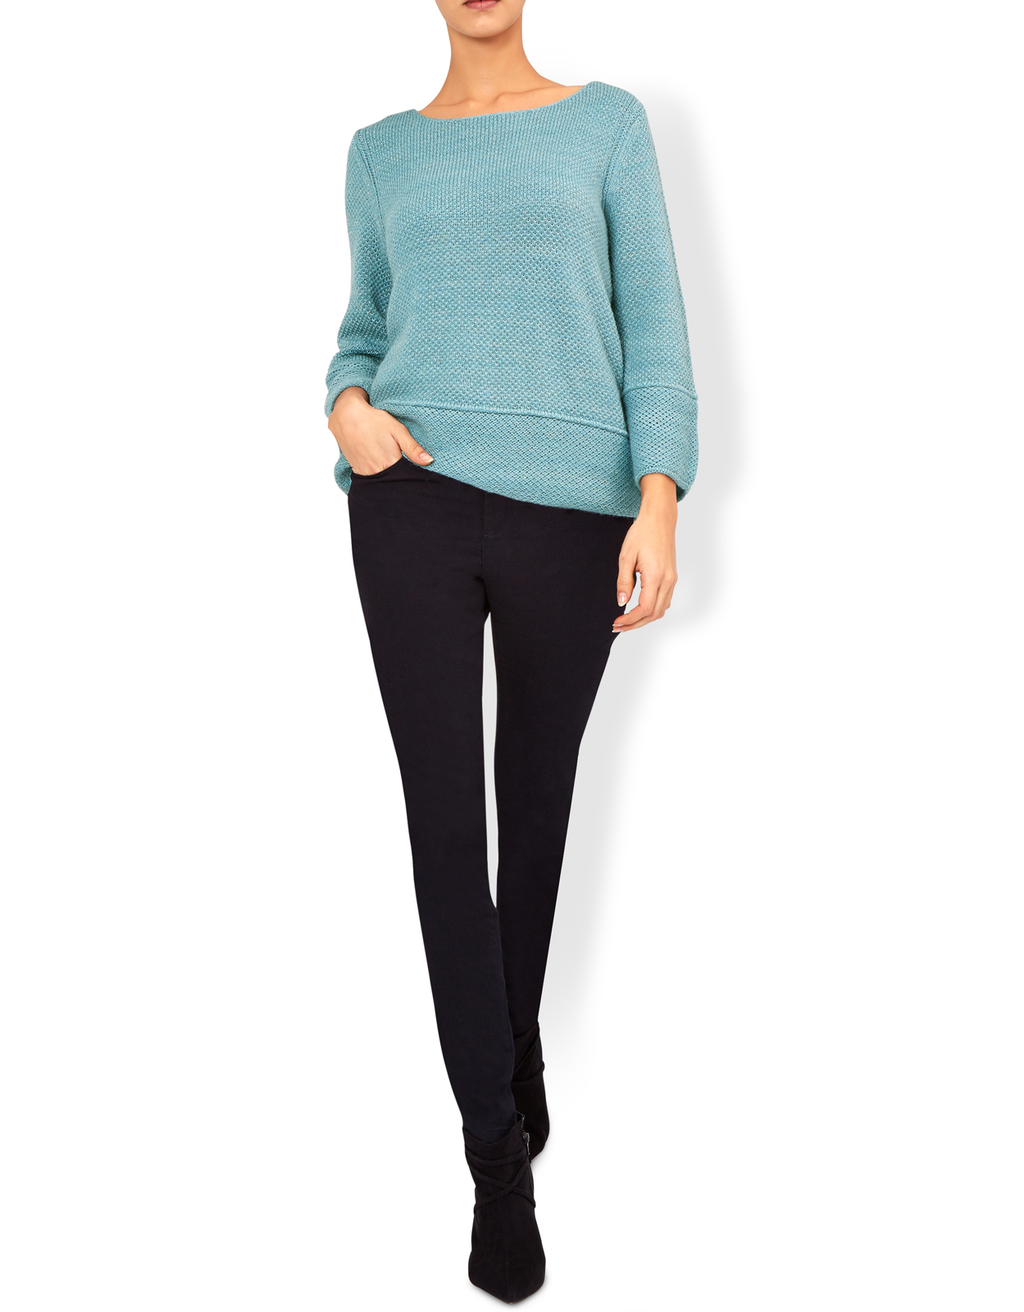 Kate Casual Sparkle Jumper - neckline: round neck; pattern: plain; style: standard; predominant colour: pale blue; occasions: casual; length: standard; fibres: cotton - mix; fit: standard fit; sleeve length: long sleeve; sleeve style: standard; pattern type: fabric; texture group: jersey - stretchy/drapey; season: a/w 2016; wardrobe: highlight